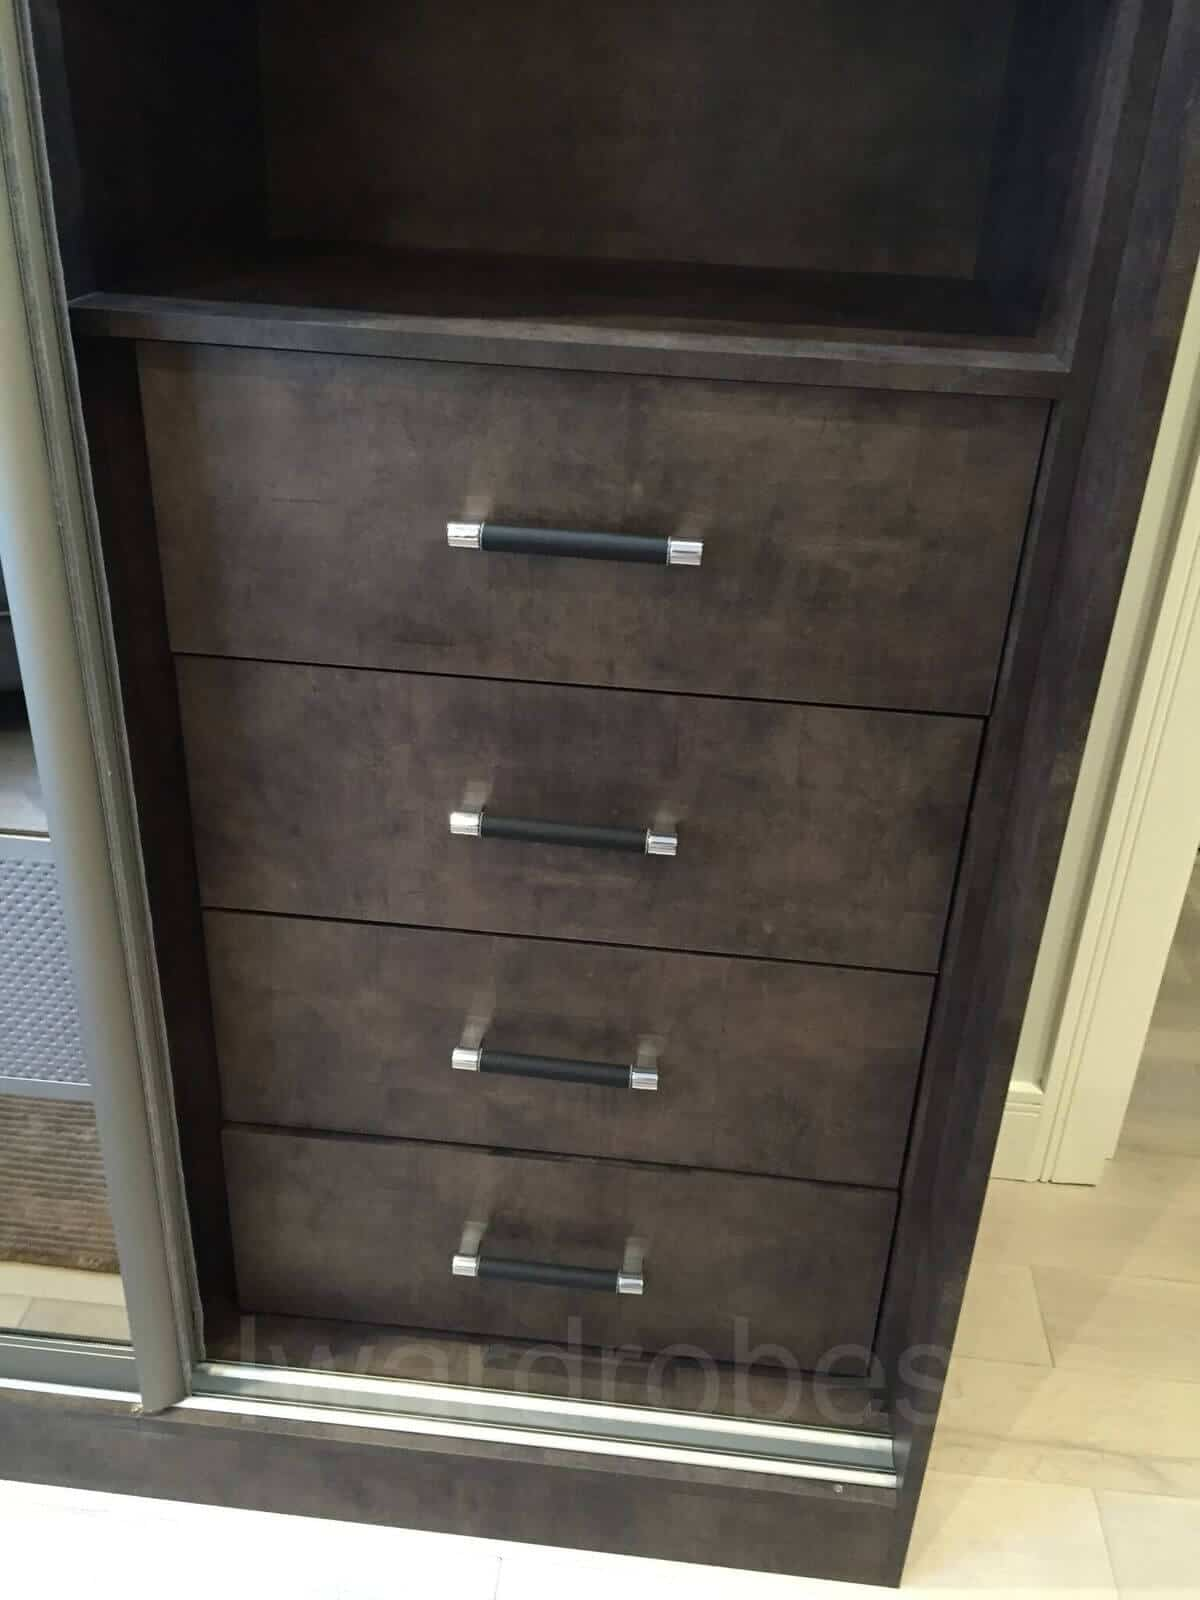 Made to measure sliderobe with fitted drawers in London